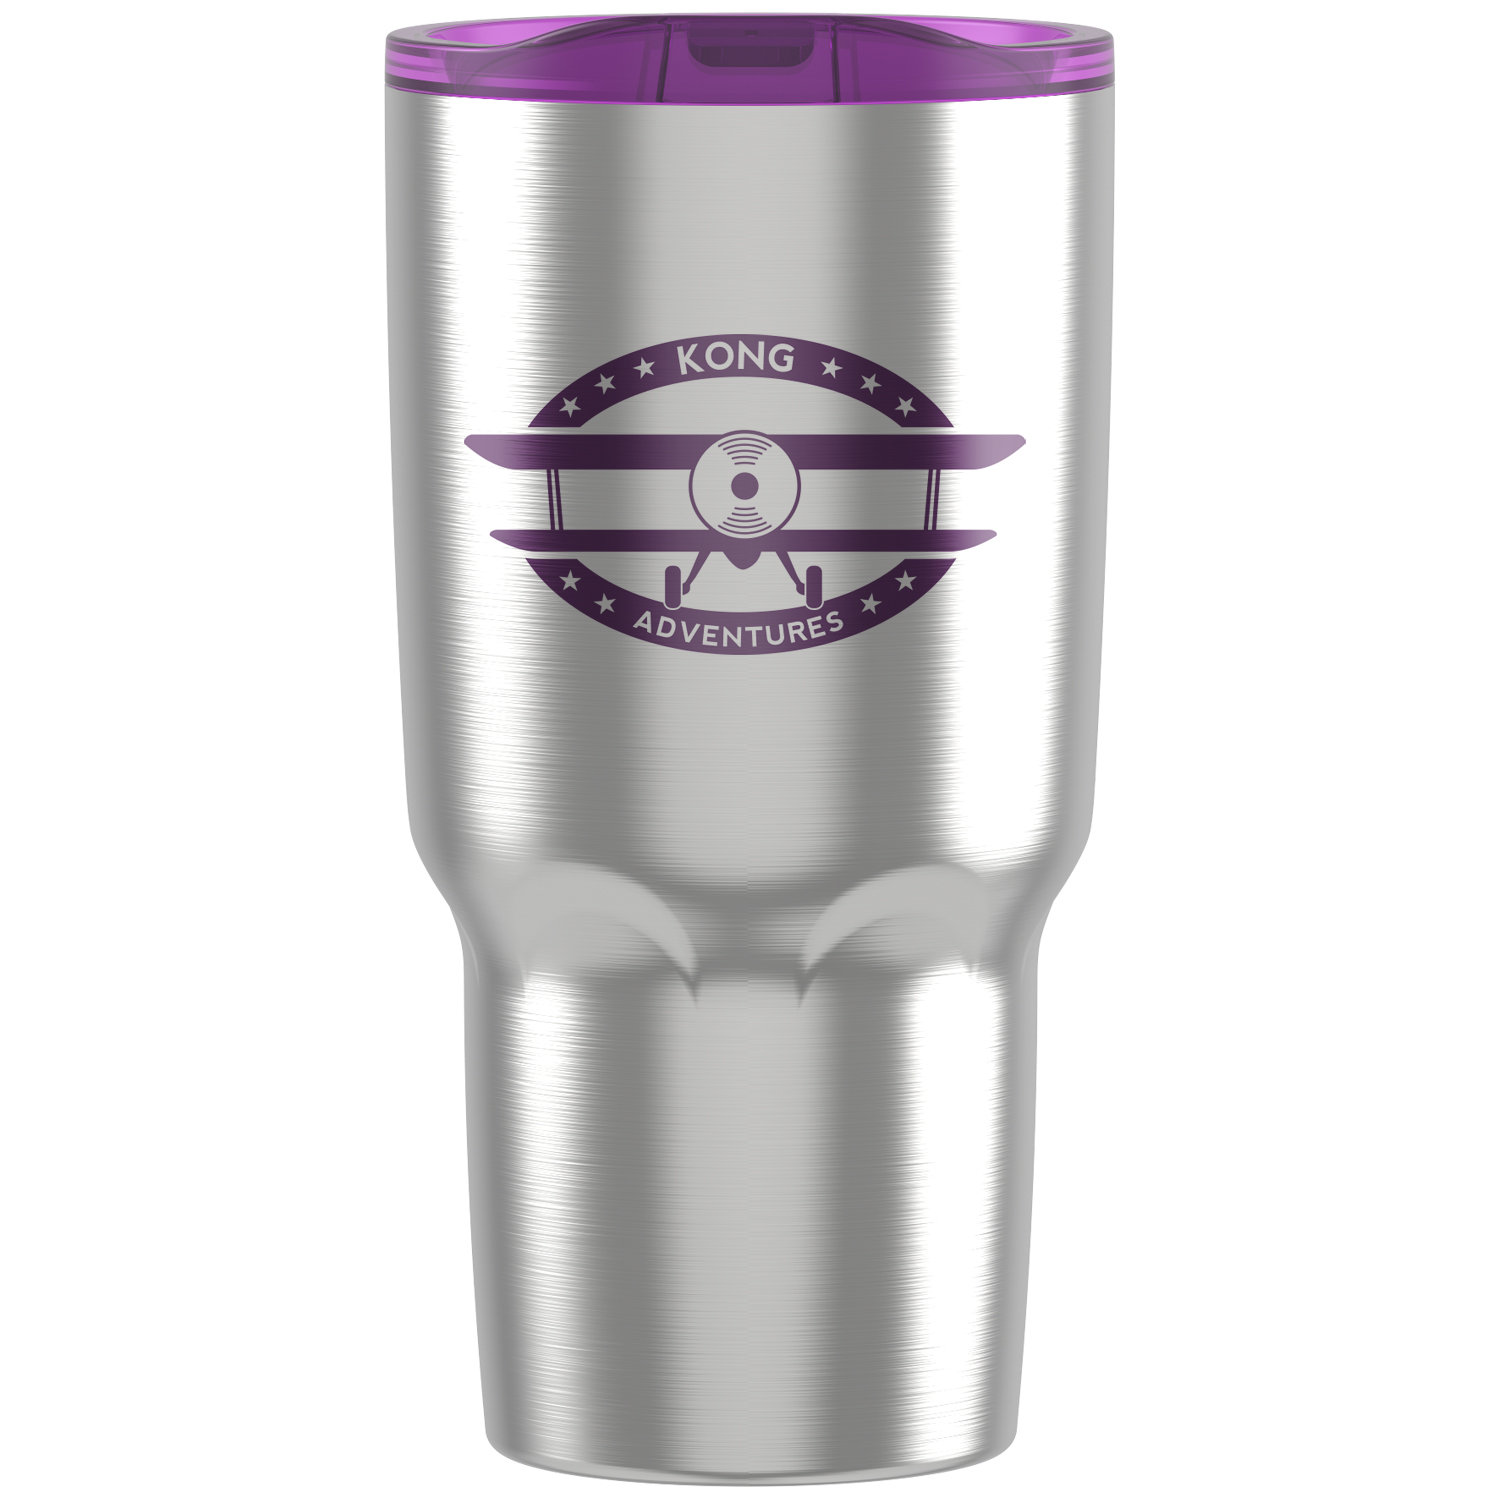 26 Oz. Kong Vacuum Insulated Tumbler